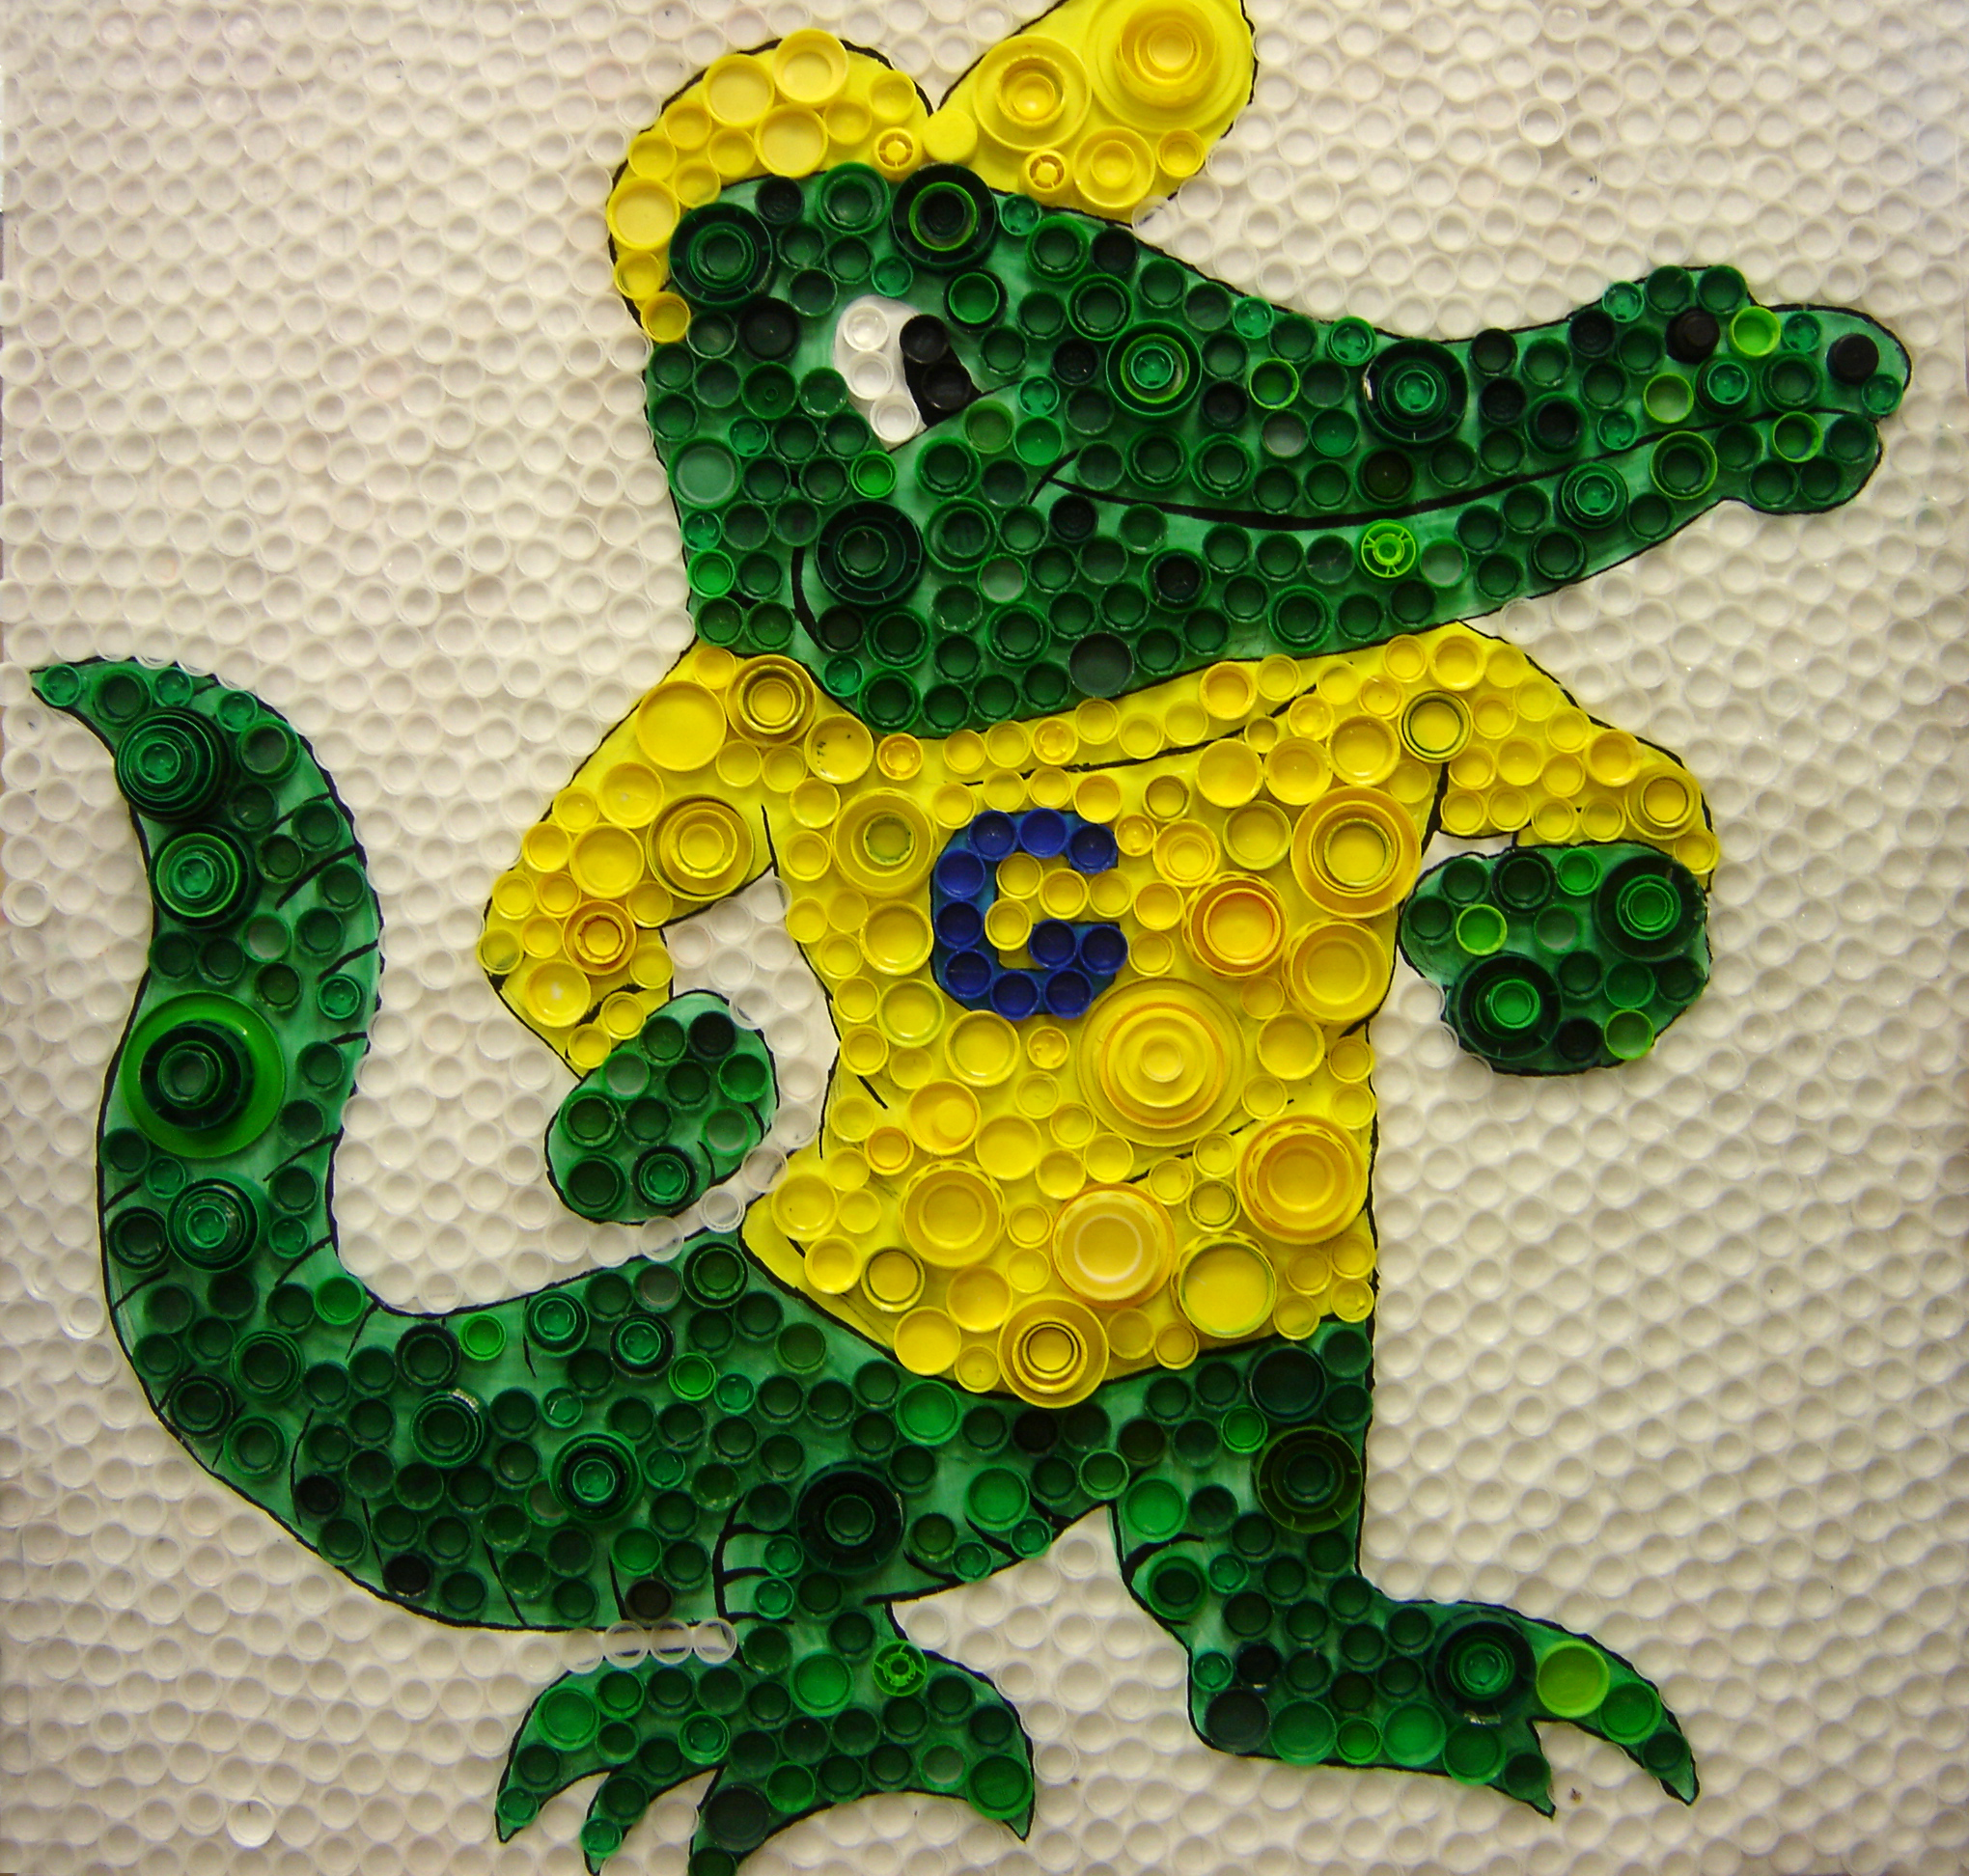 Gator created using recycled materials